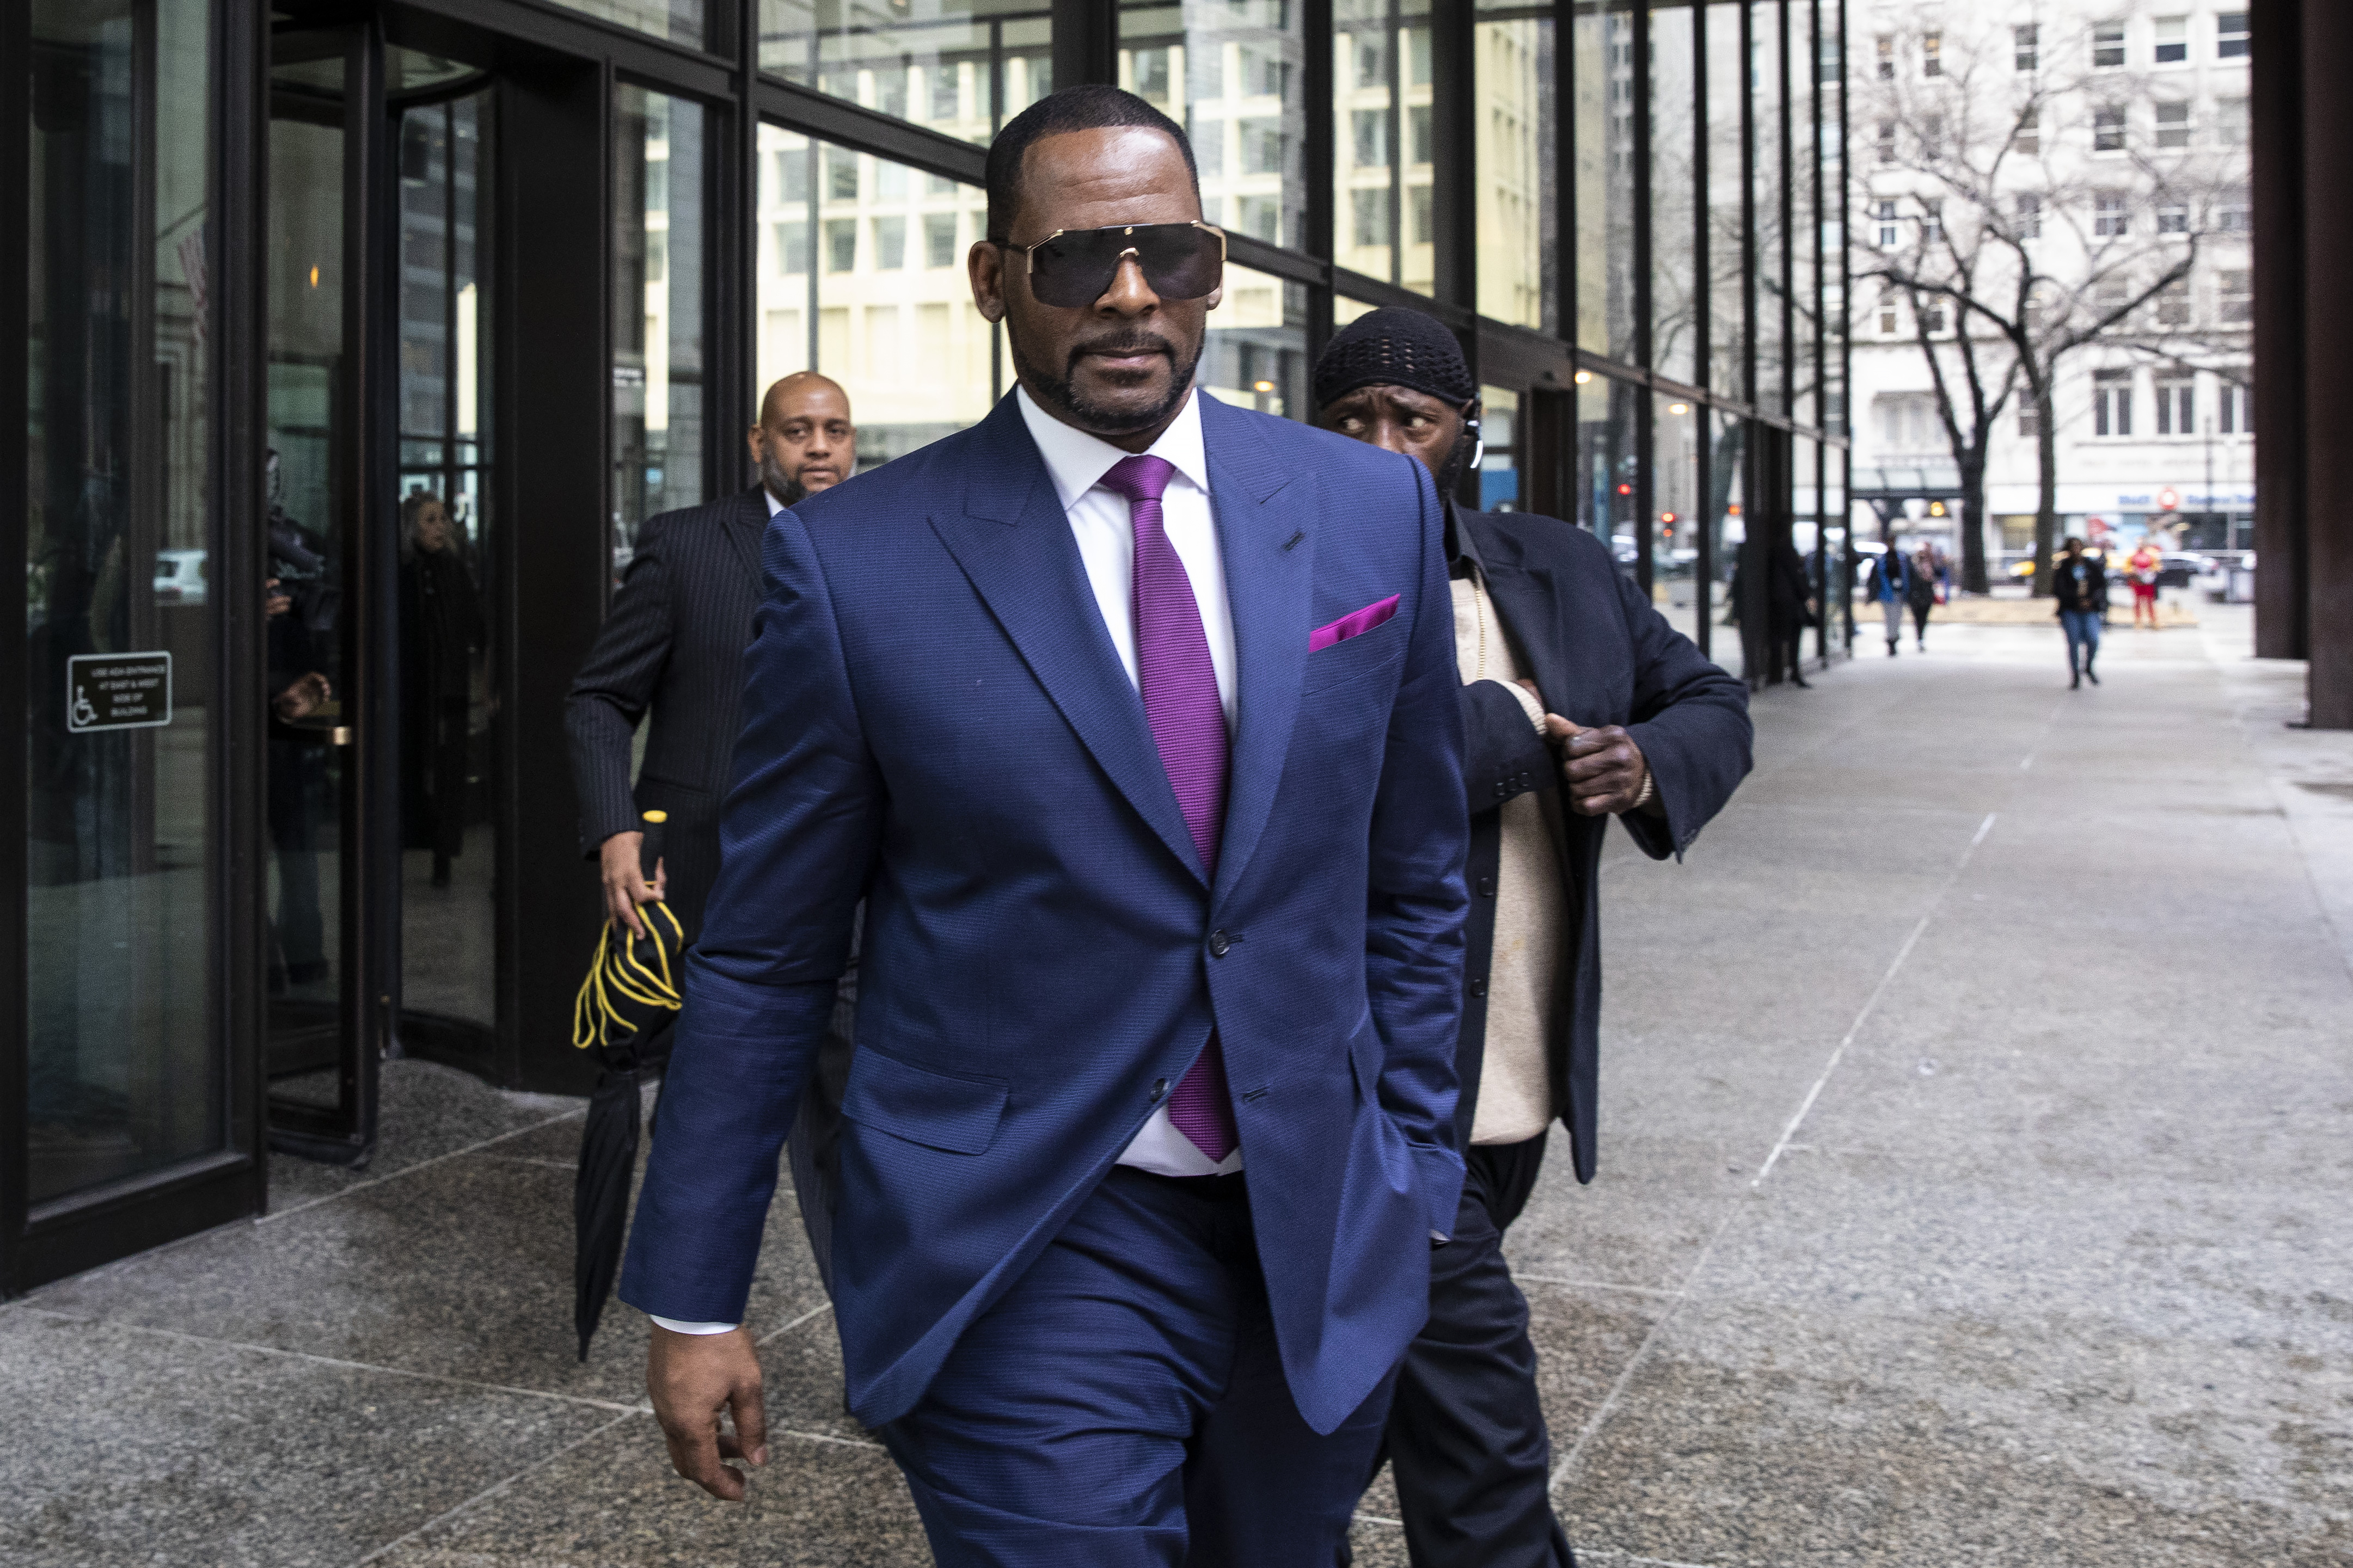 R. Kelly walks out of the Daley Center after an appearance in child support court, Wednesday morning, March 13, 2019.